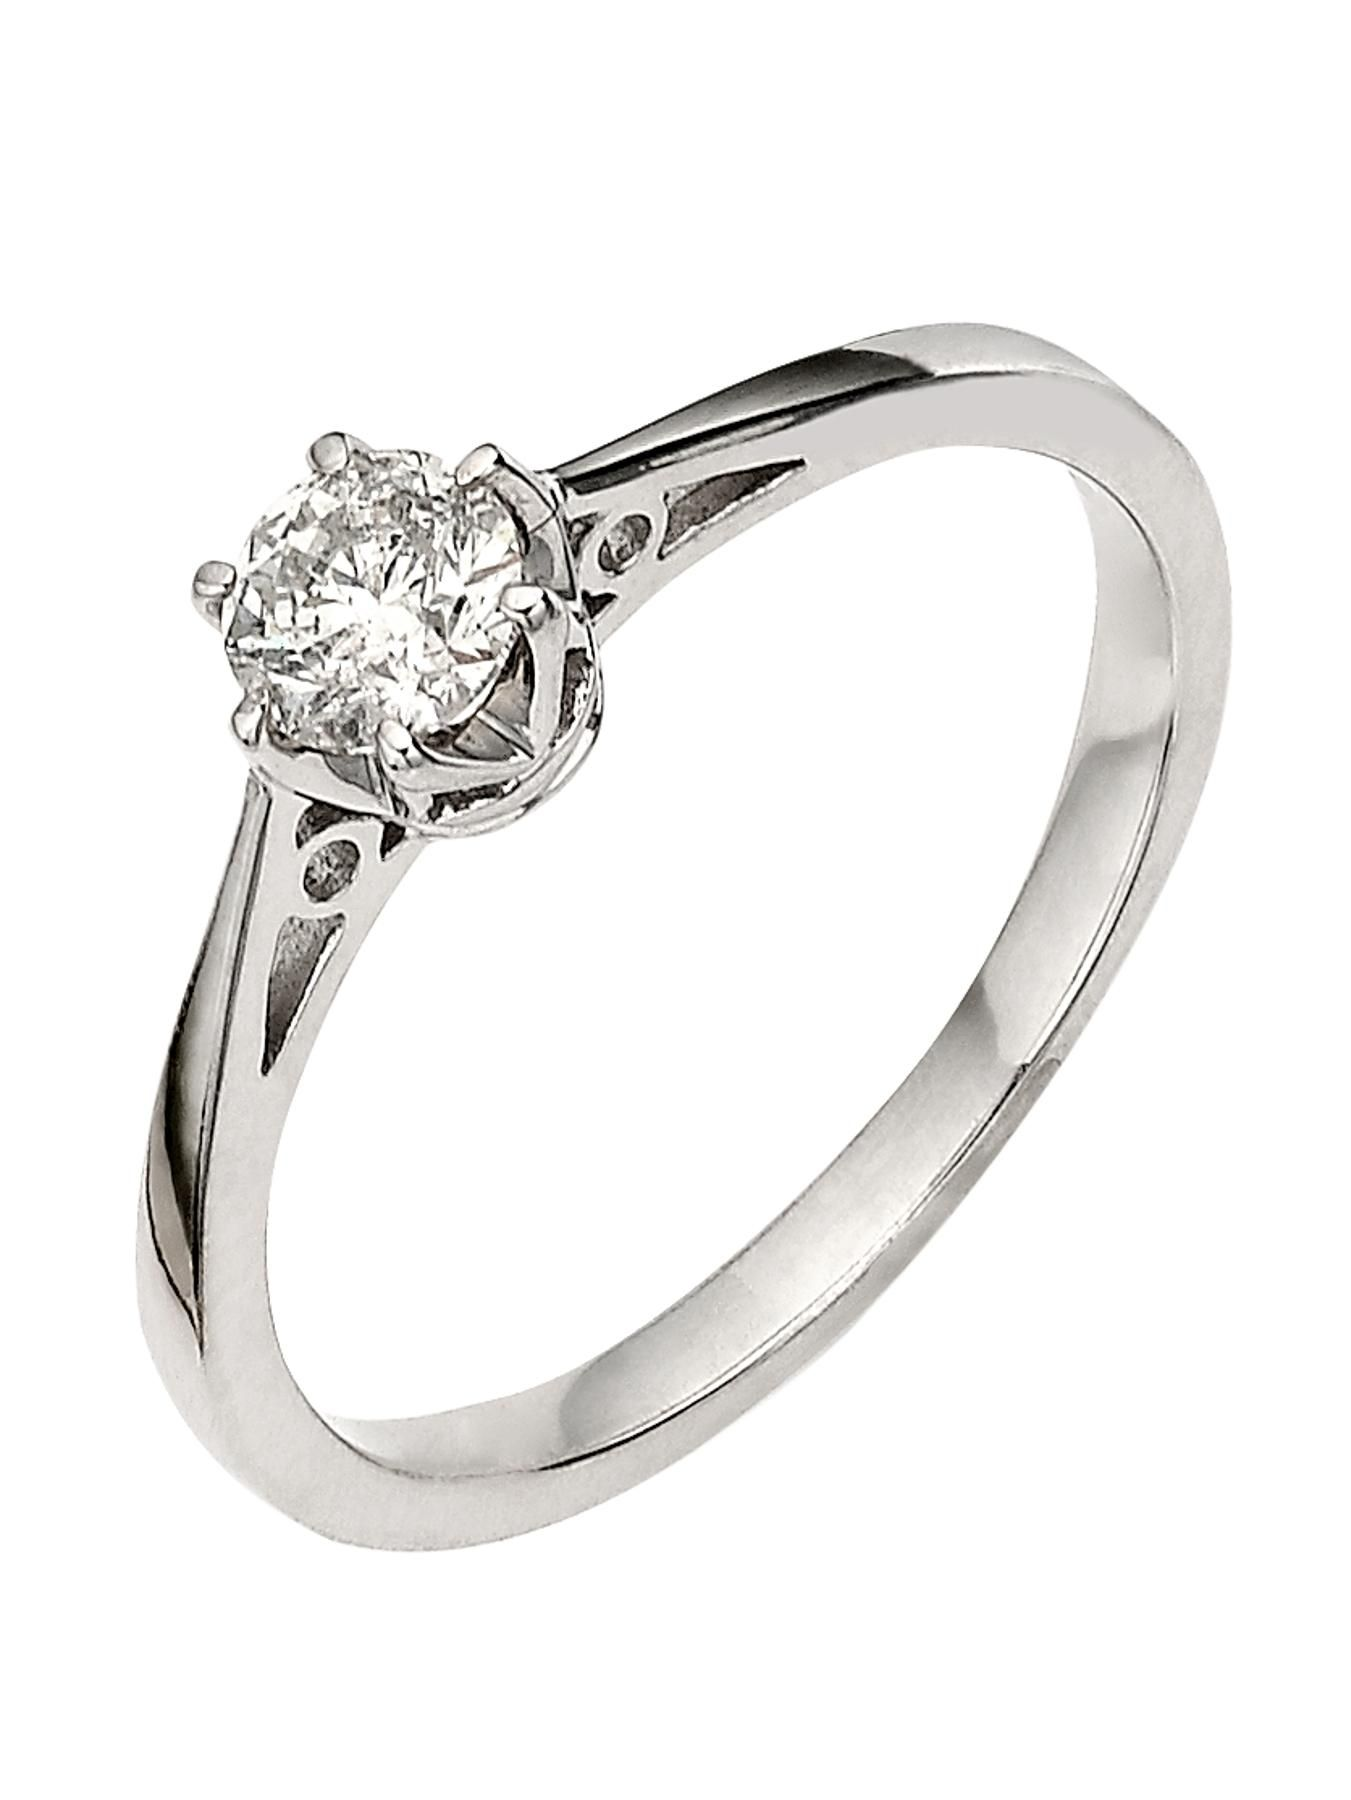 Diamond Solitaire Engagement 9ct White Gold Ring RRP £635 Size O